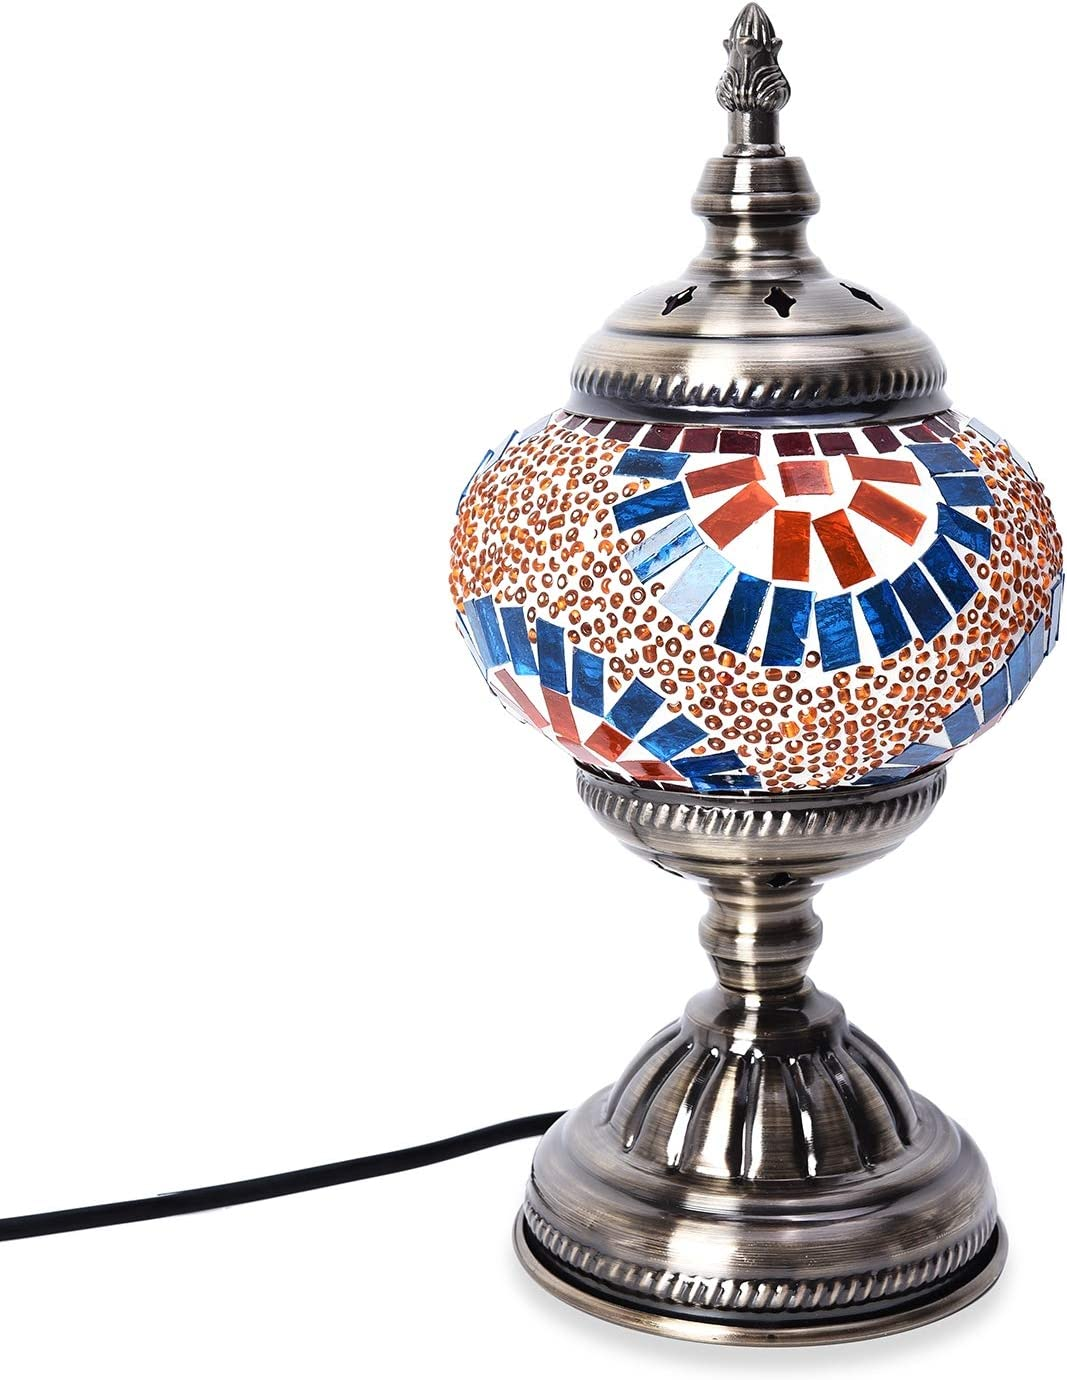 Shop LC Delivering Joy Home Decor Handcrafted Orange Sunburst Pattern Mosaic Turkish Style Table Lamp Nightstand with Bronze Base Requires E-12 Bulb